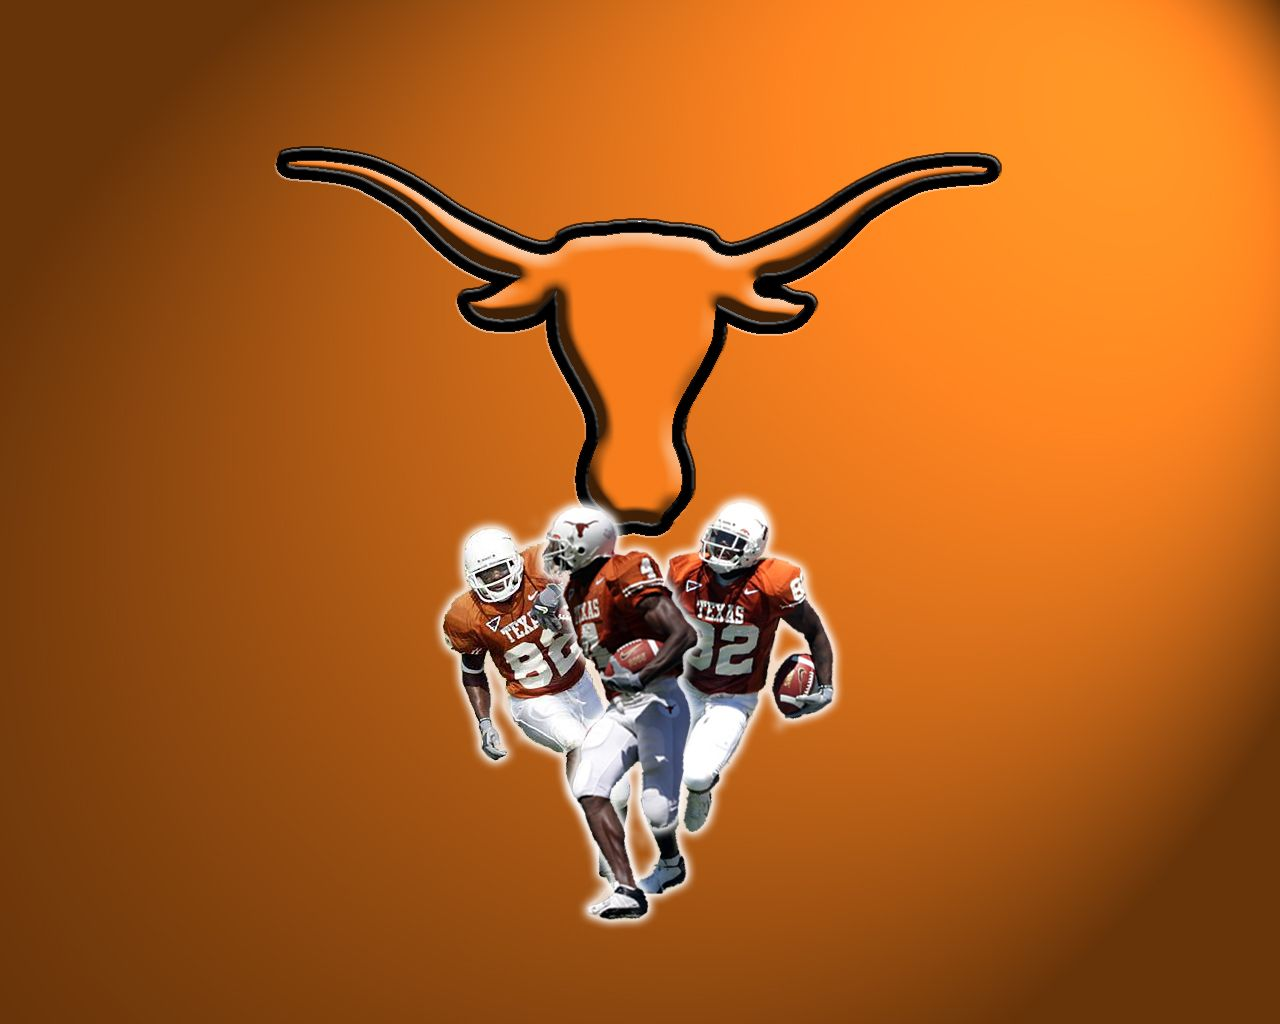 Texas Longhorns Football Wallpapers Wallpaper 1920 1080 Texas Longhorns Football Wallpapers 39 Wal Longhorns Football Texas Longhorns Football Texas Longhorns